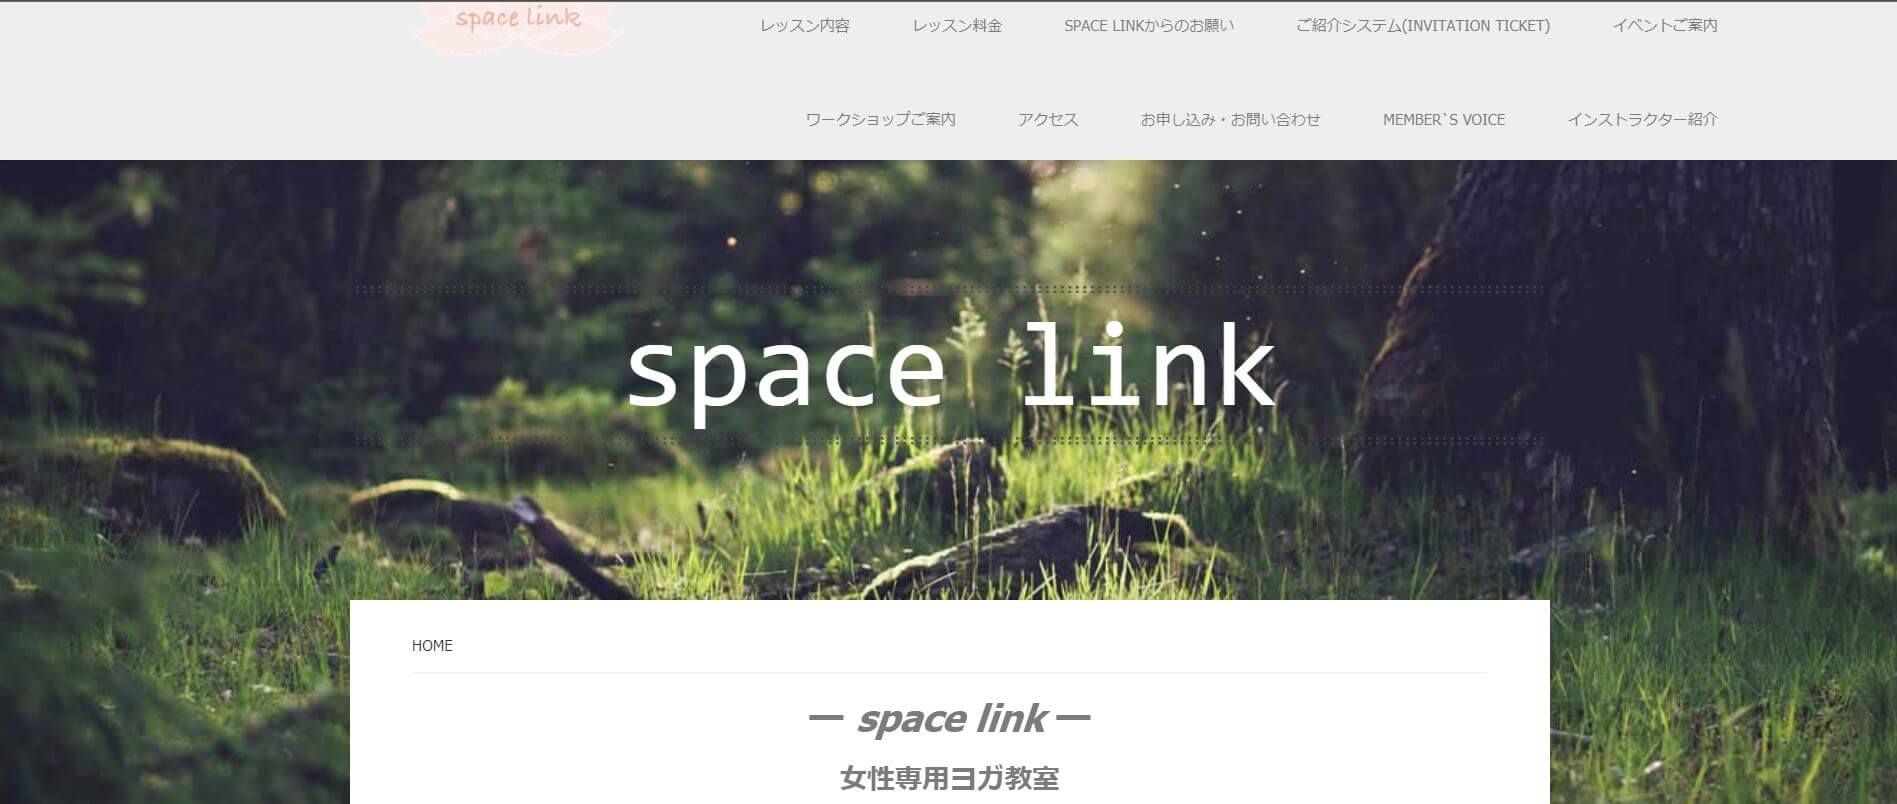 Space link